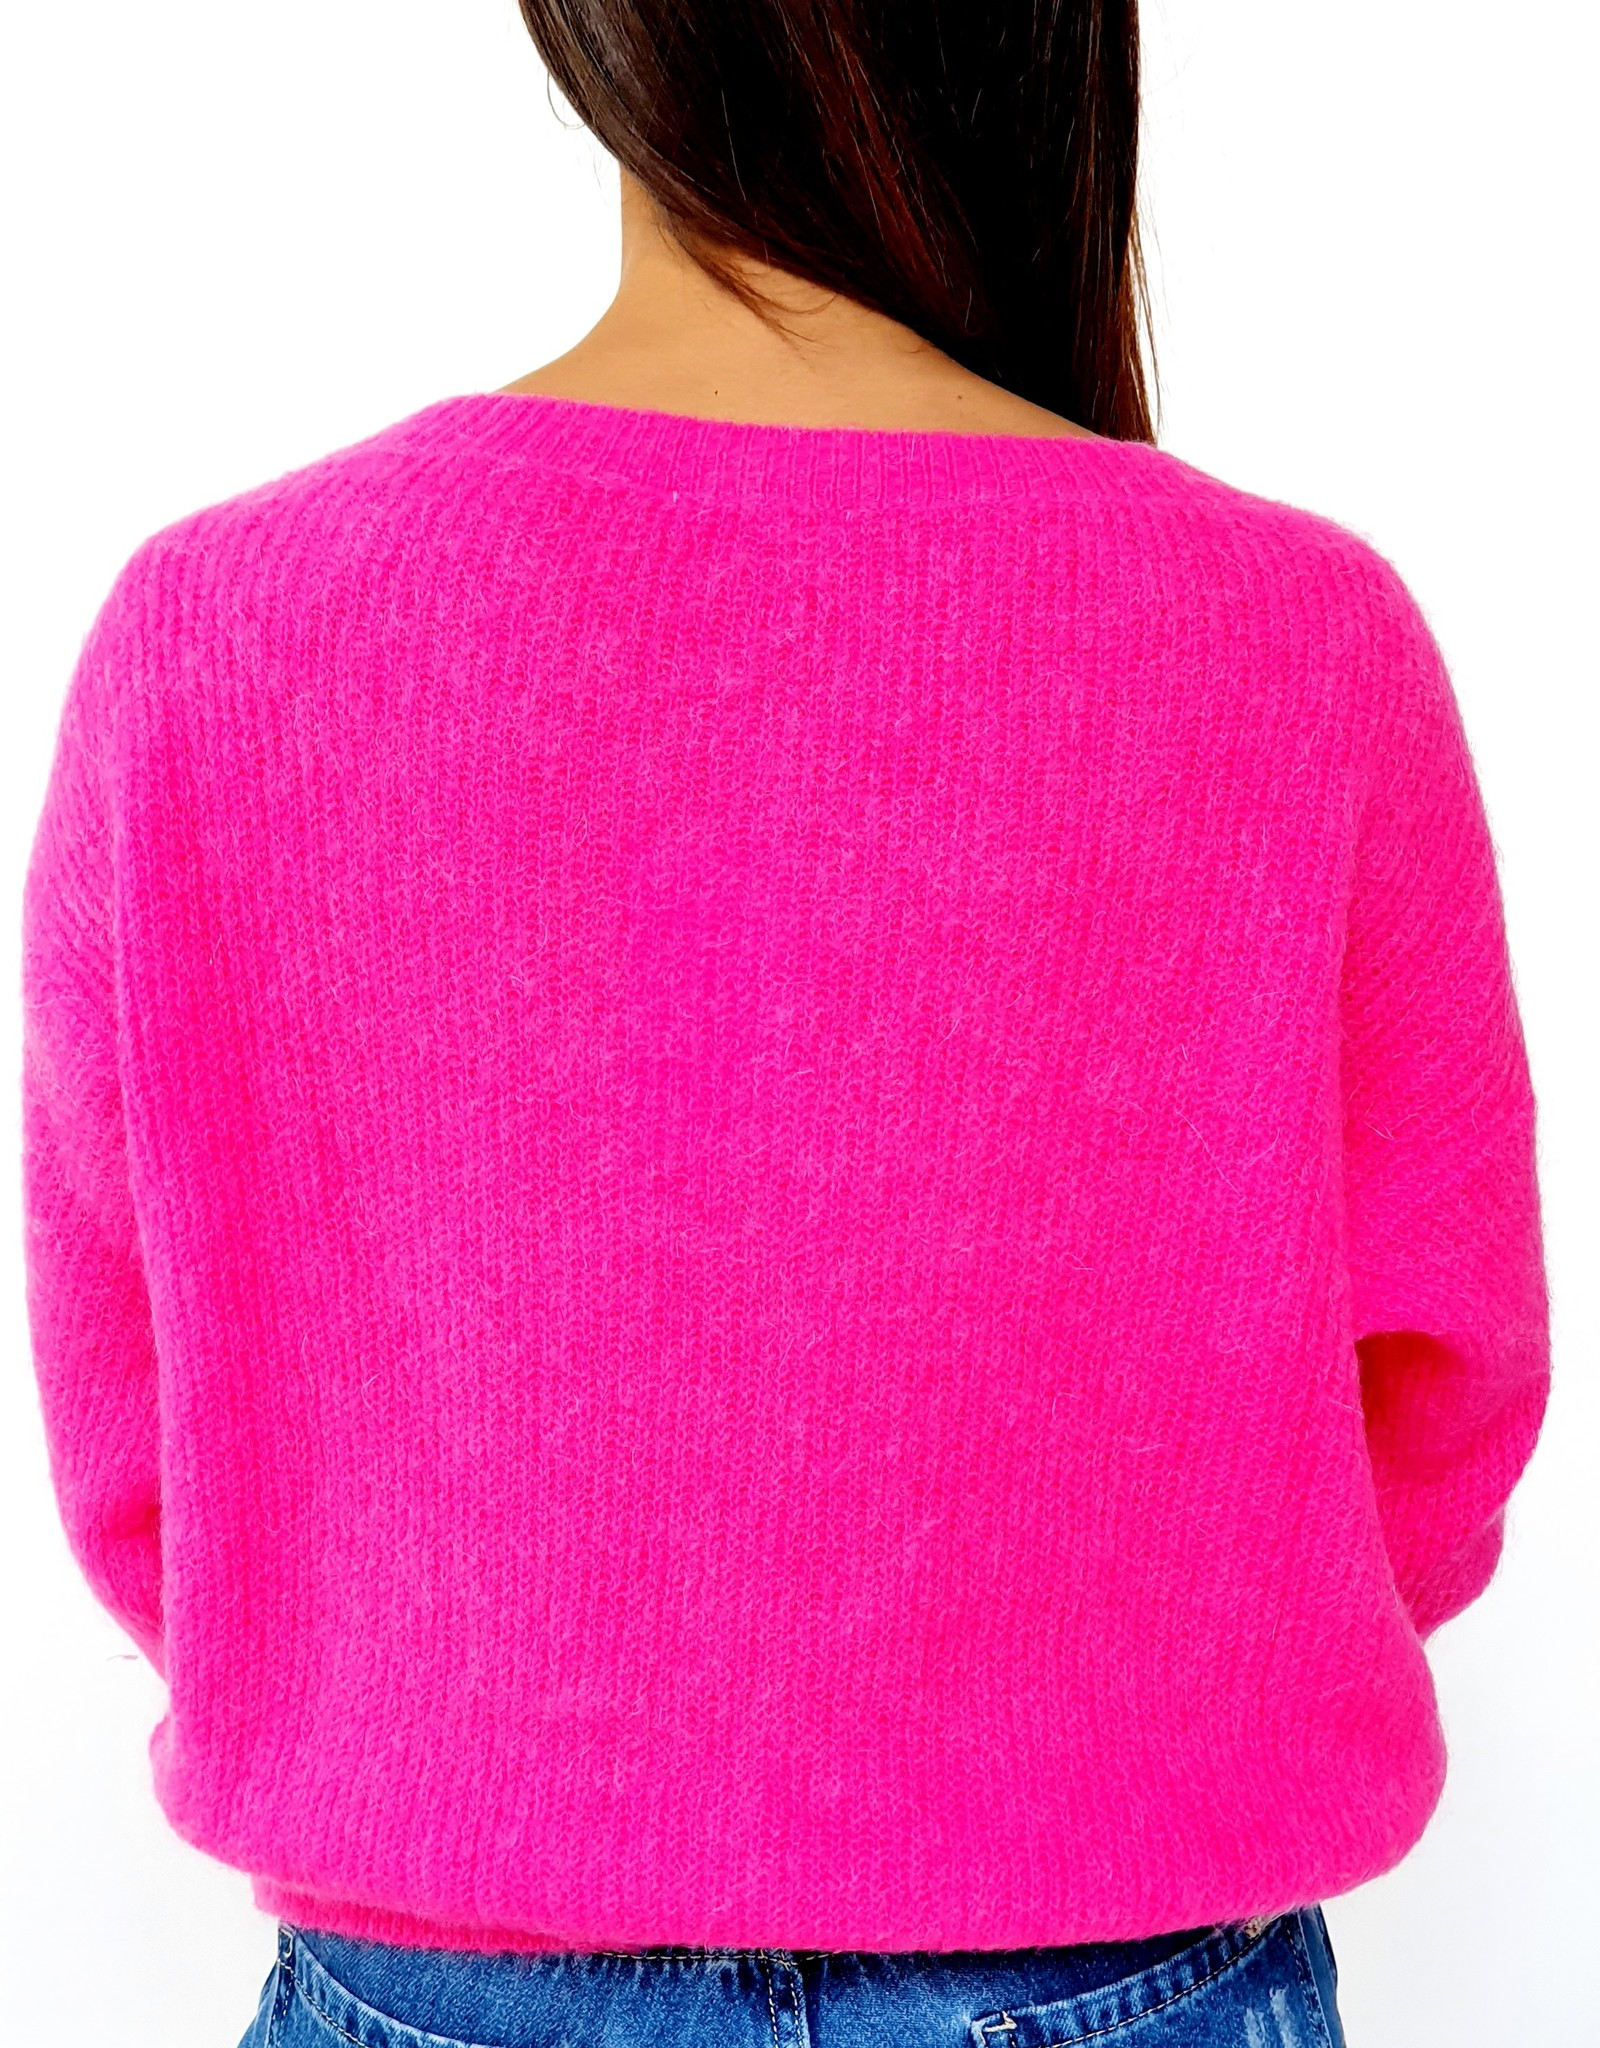 Fuchsia feeling knitted sweater